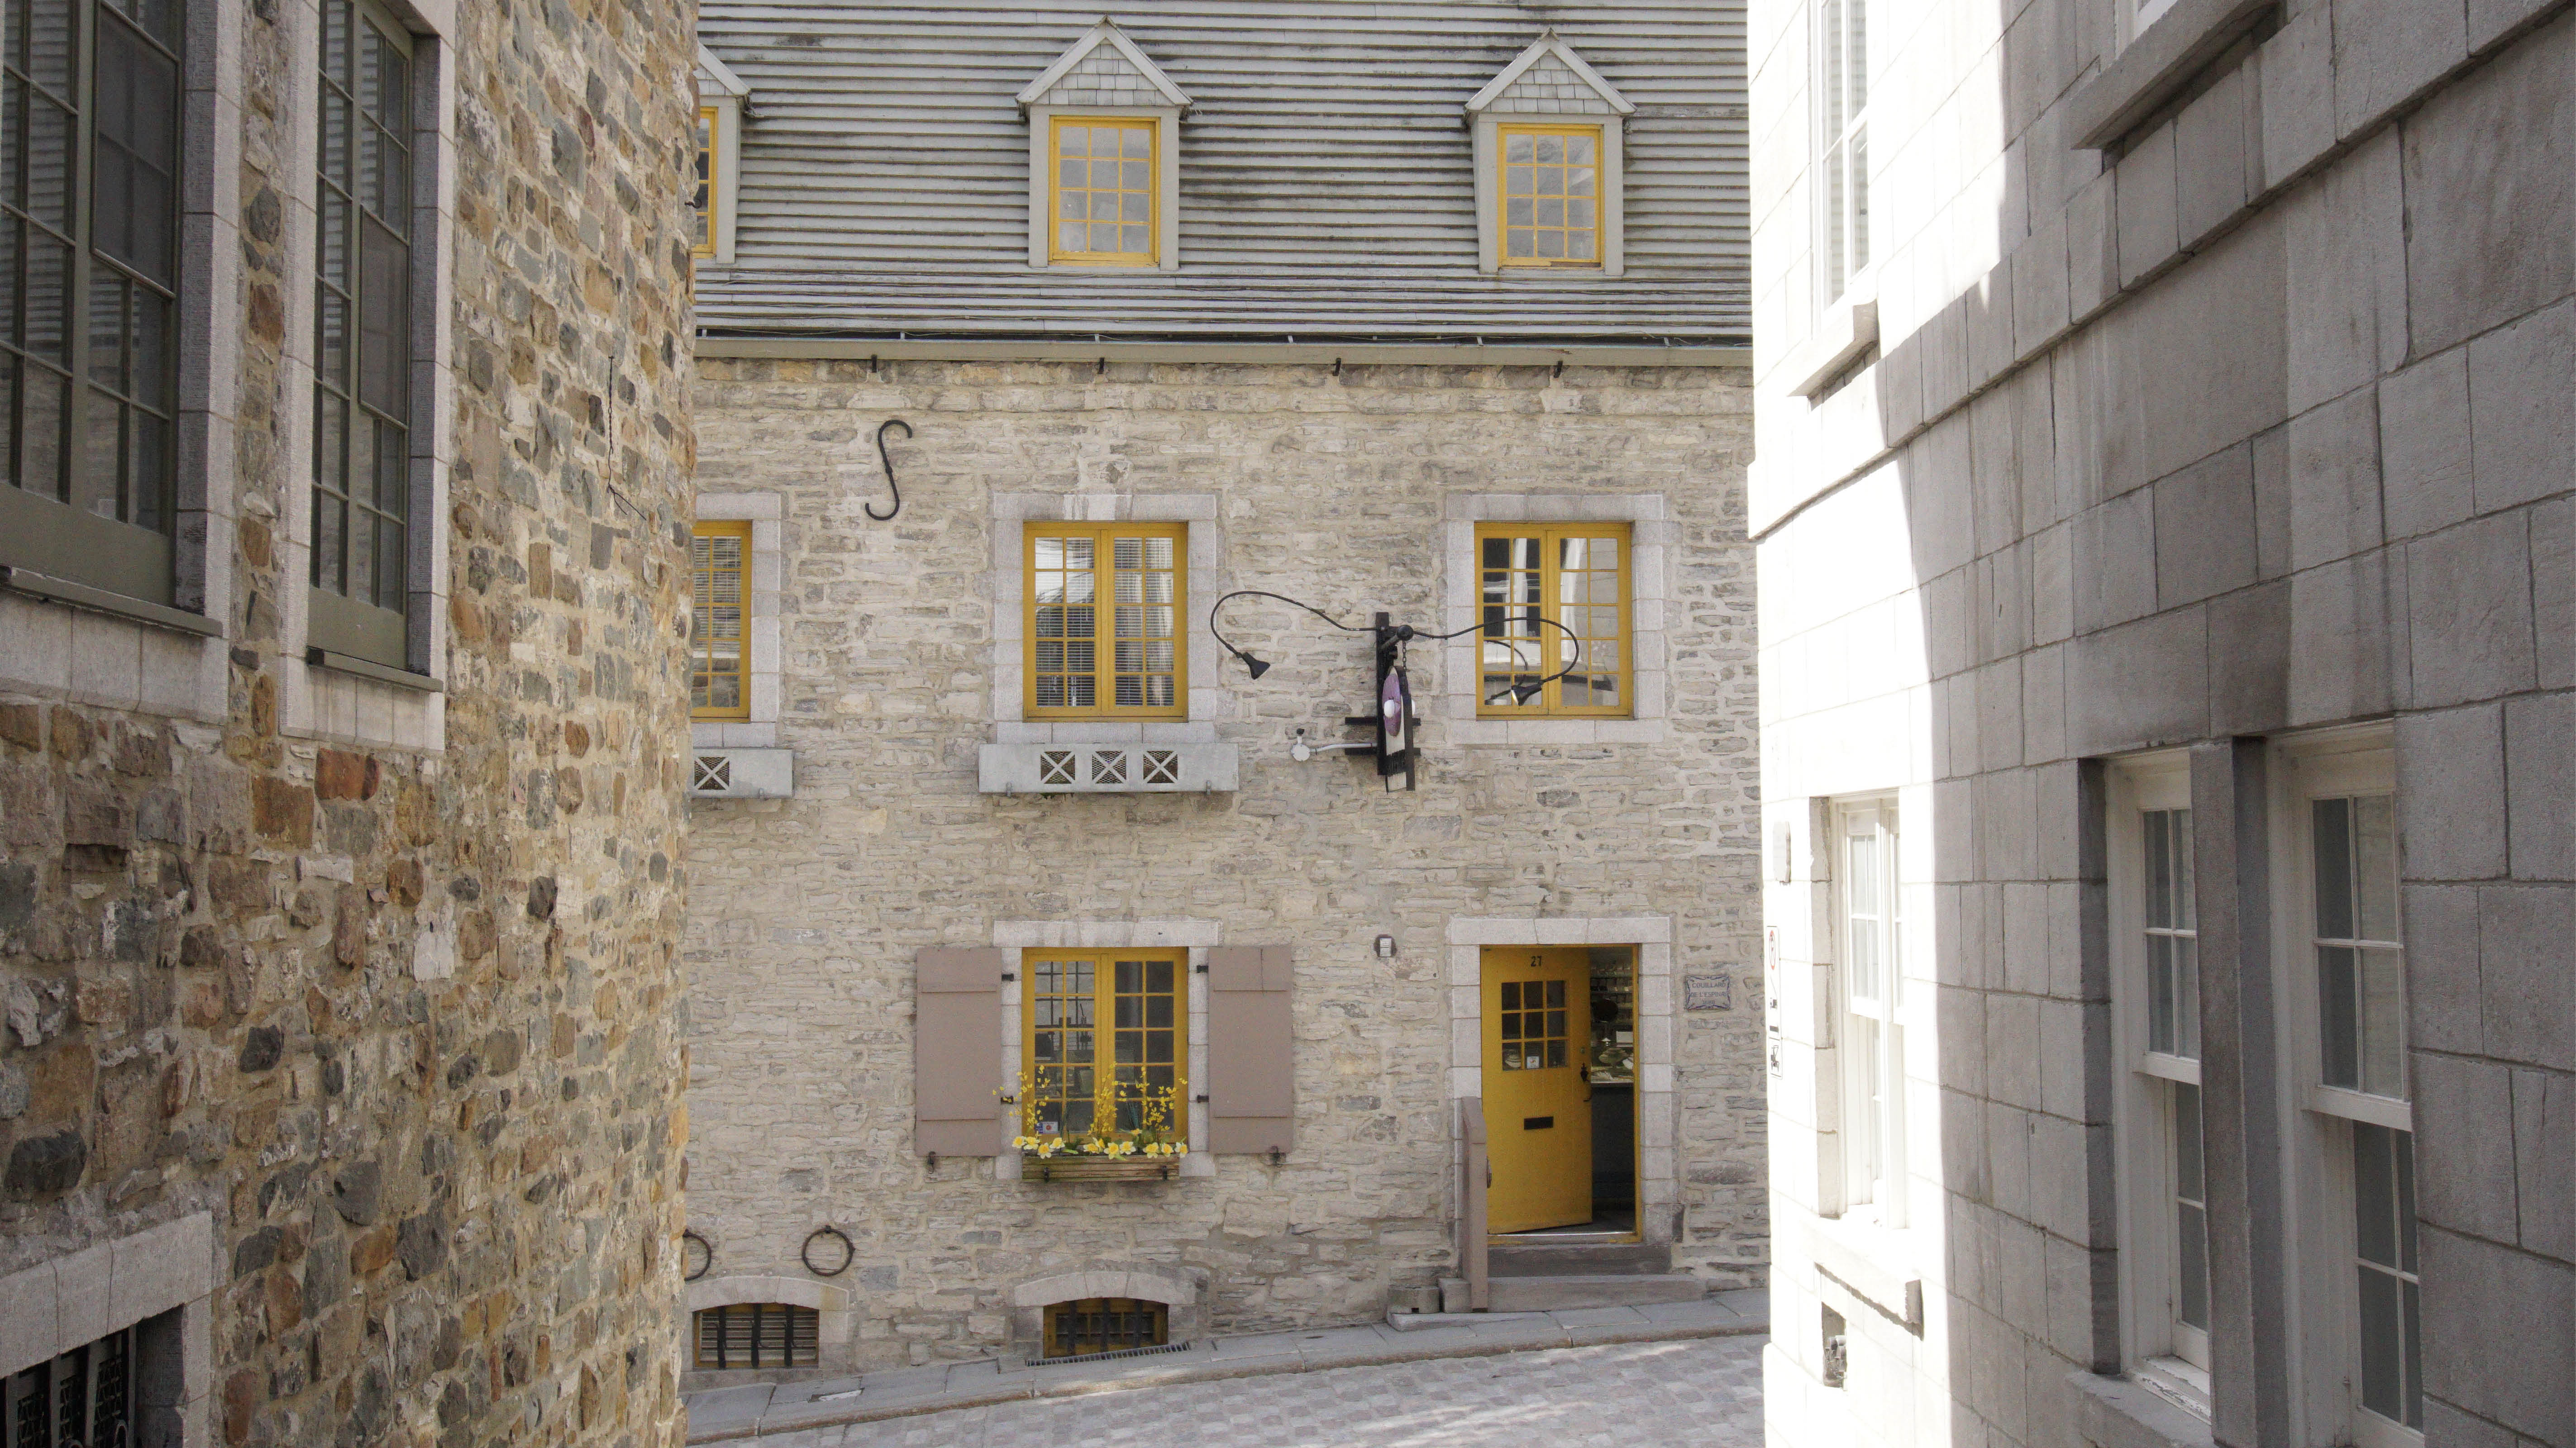 Place Royale in Old Quebec City